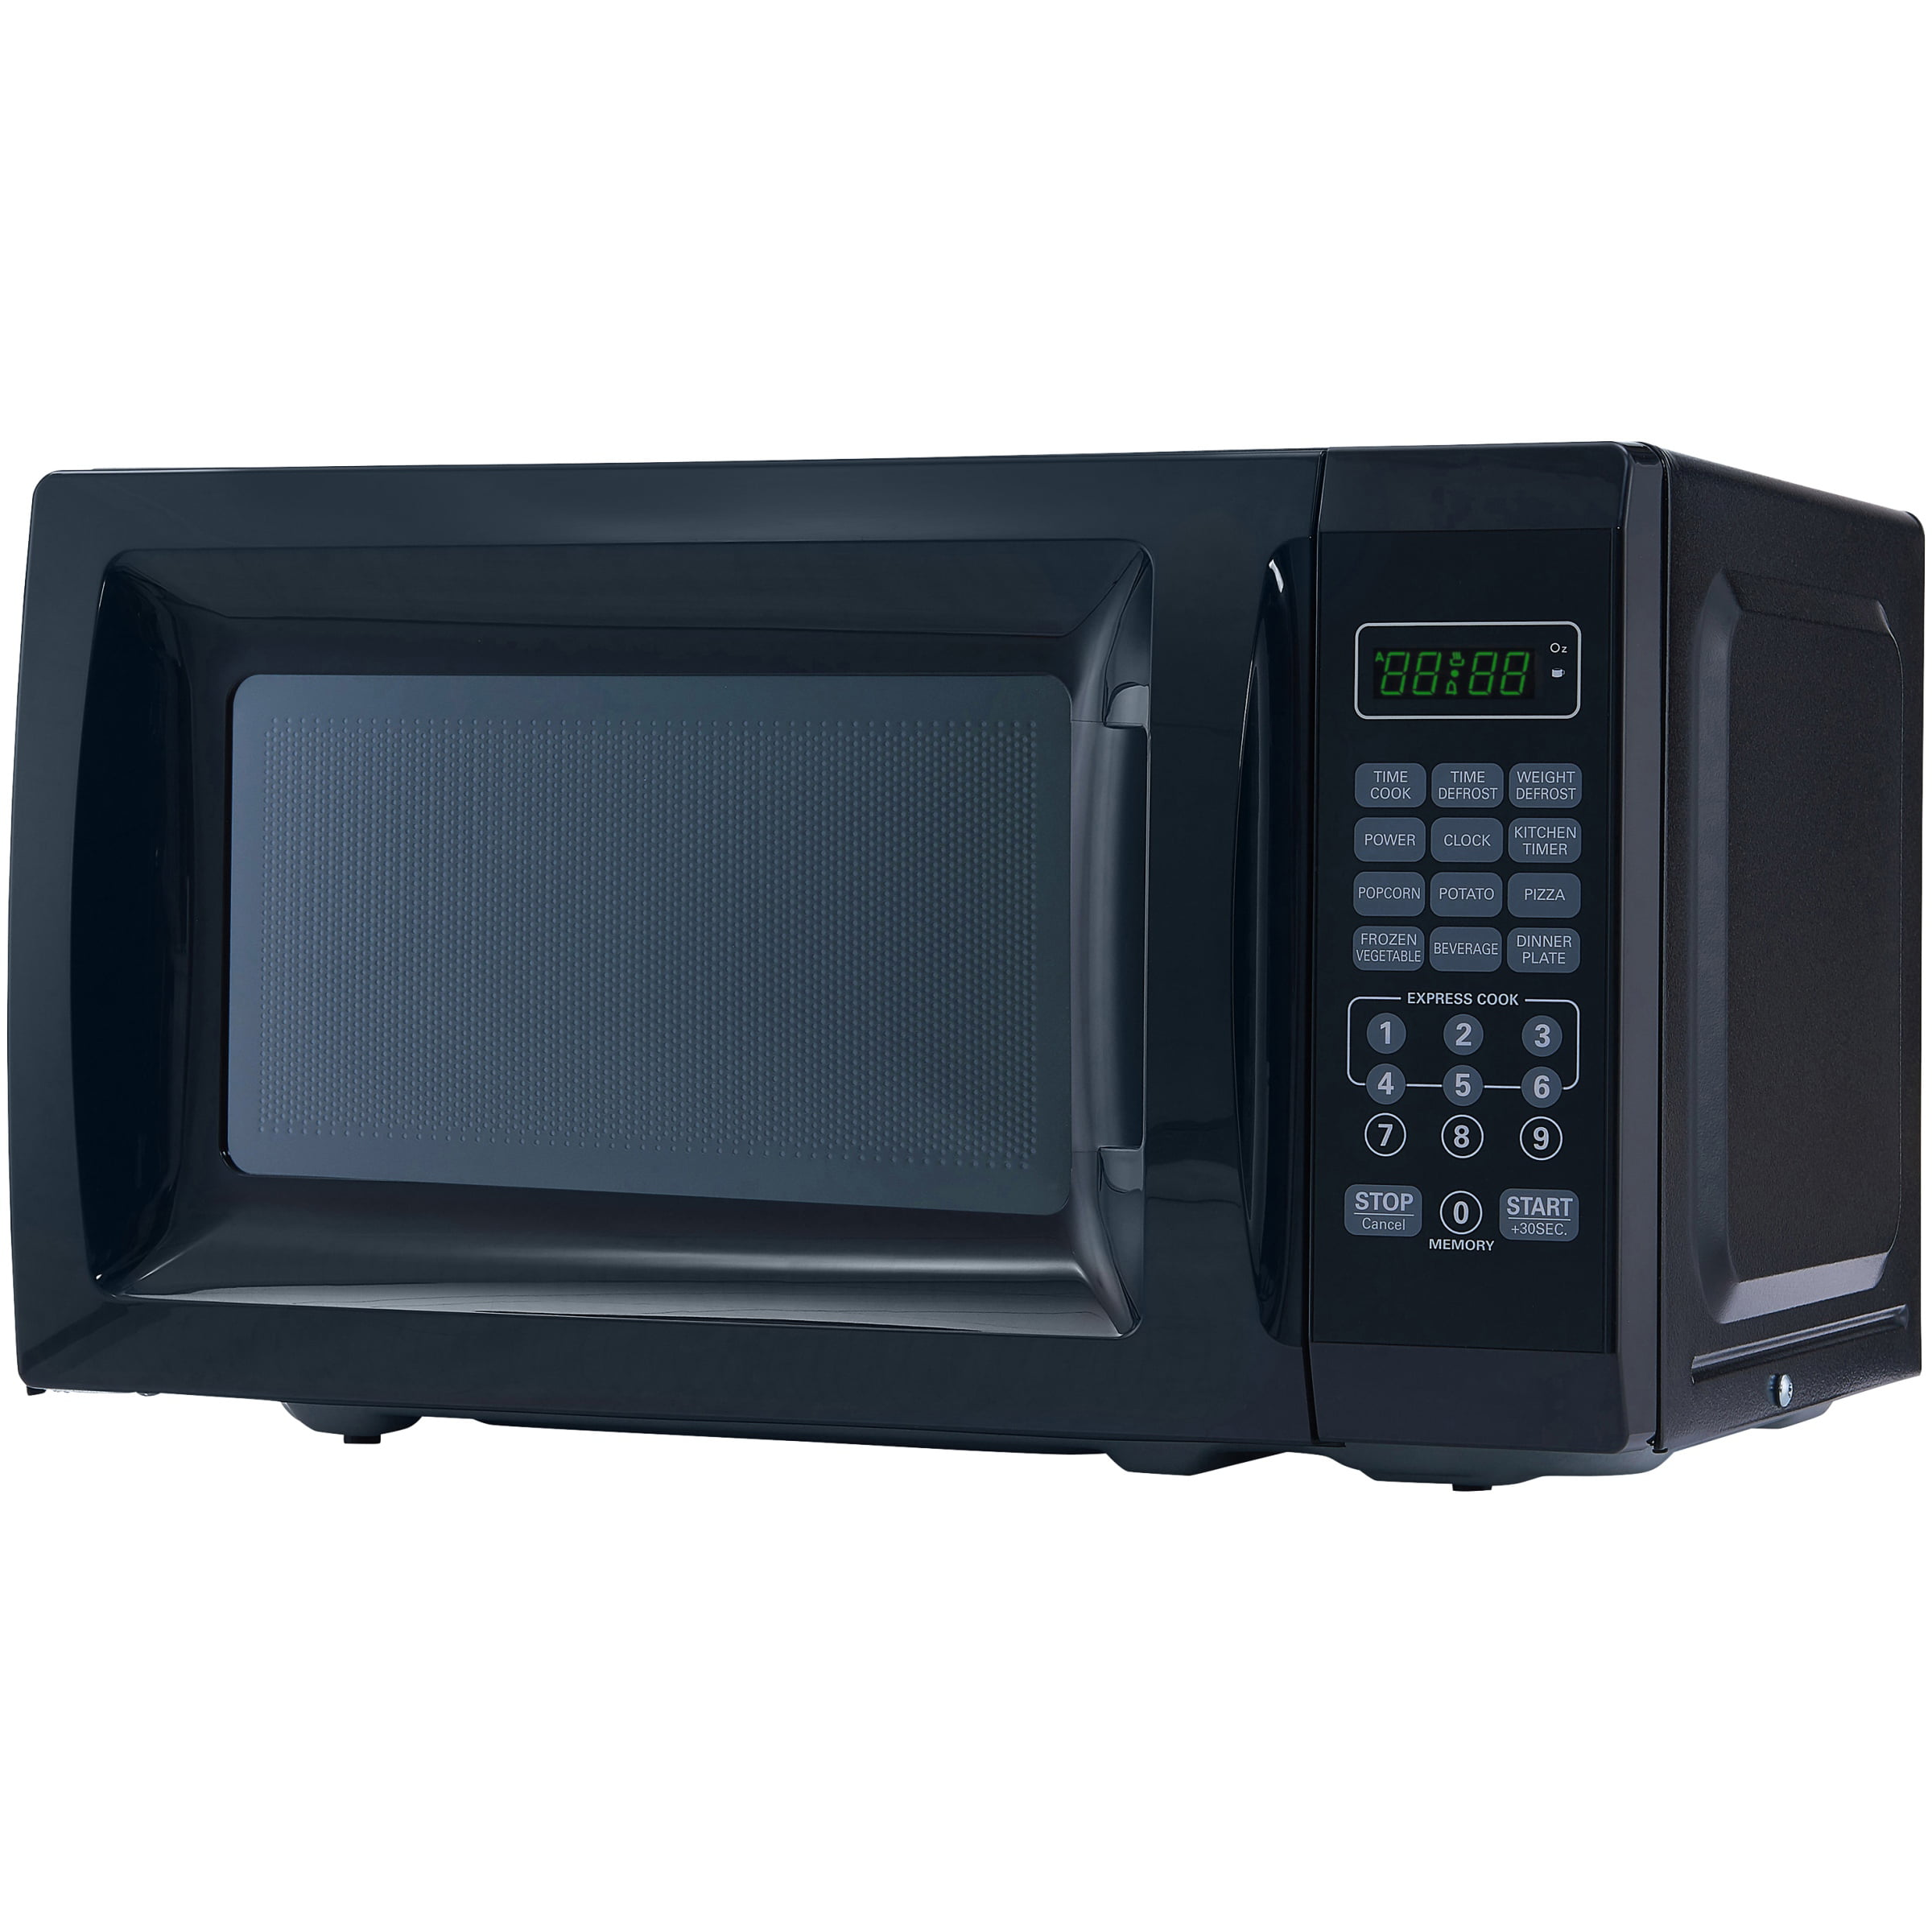 Ft 700w Black Microwave With 10 Levels